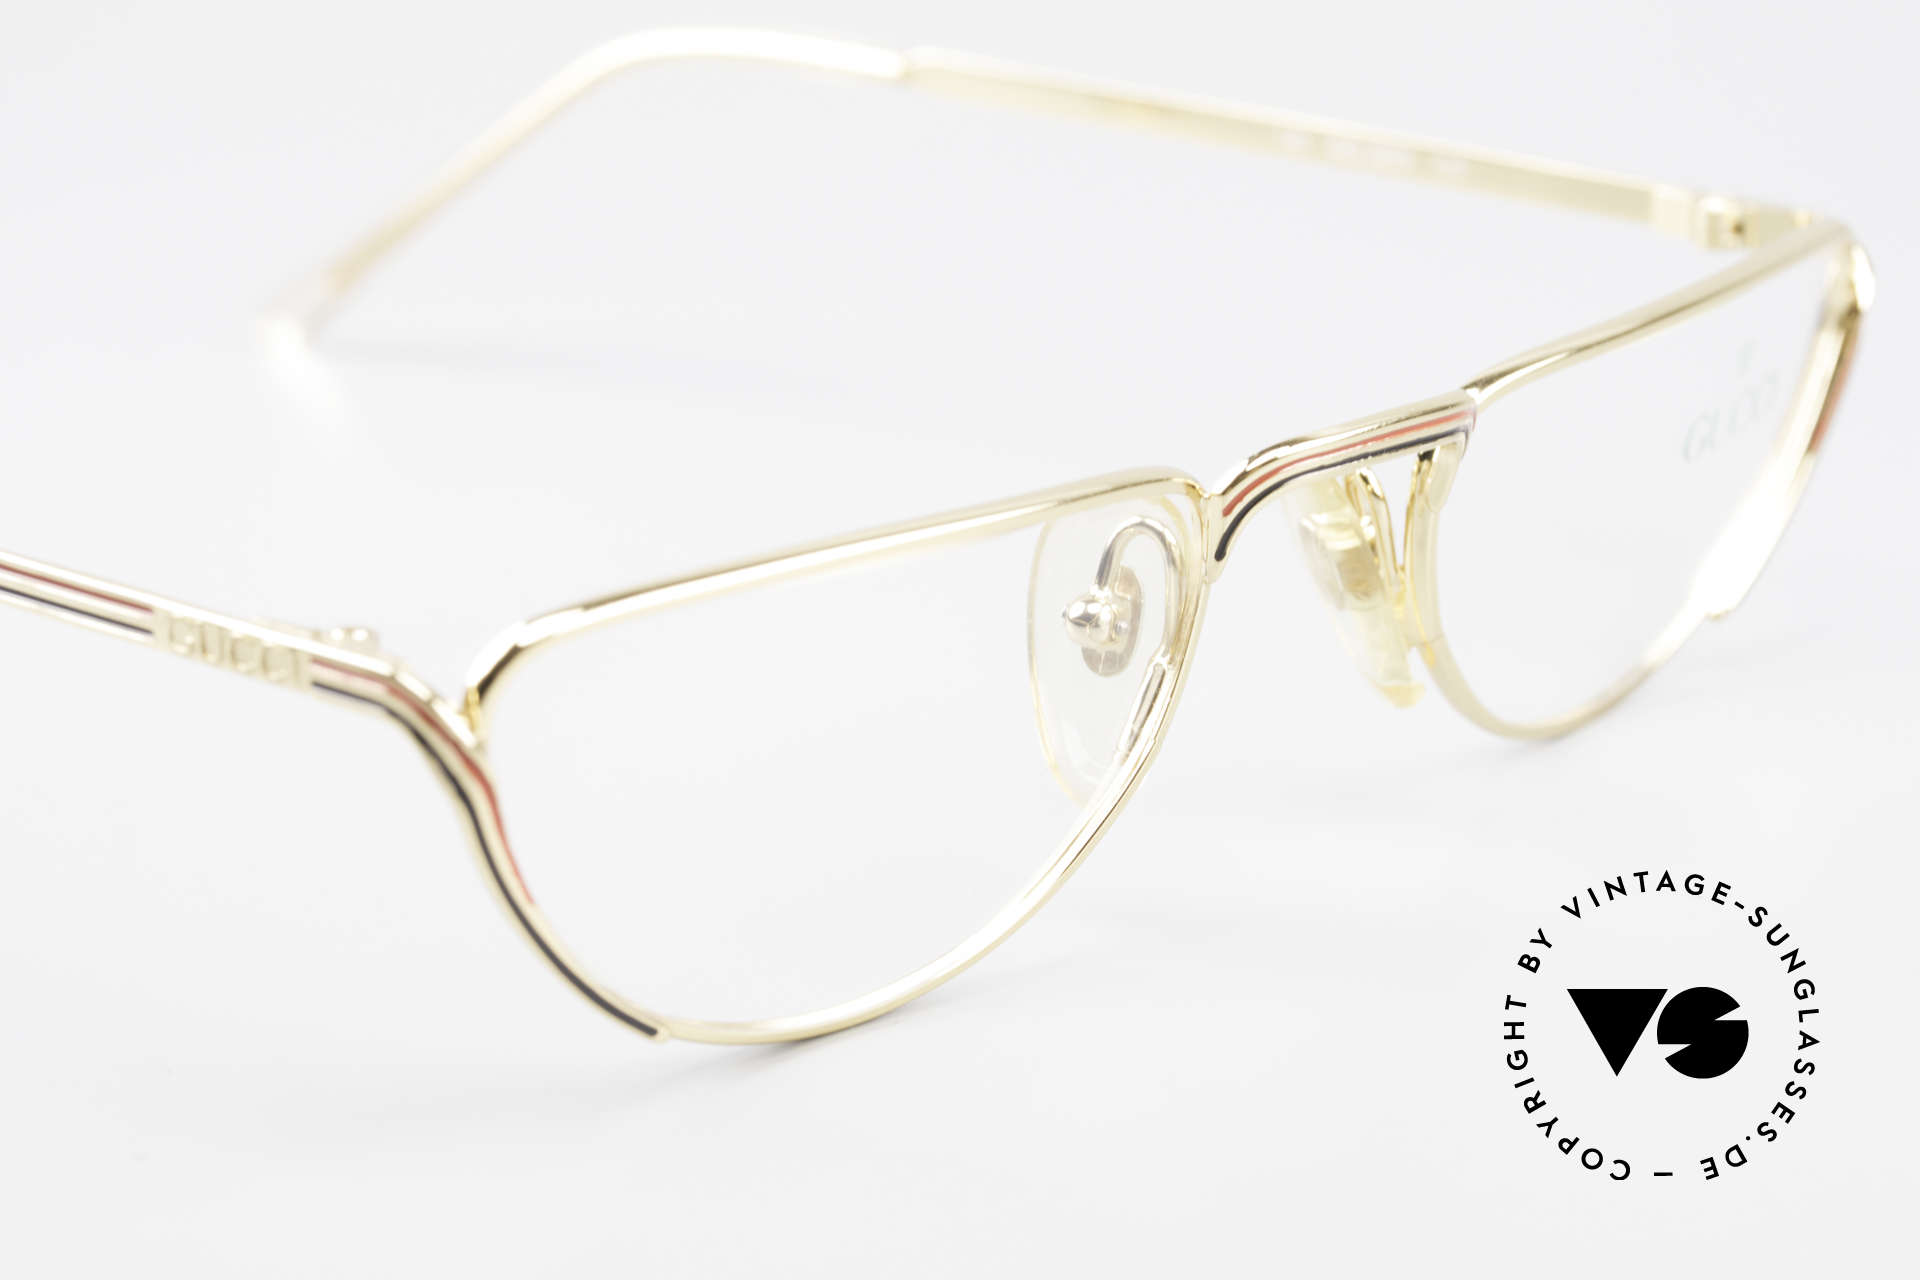 Gucci 2203 80's Vintage Reading Glasses, NO retro eyewear, but an old vintage ORIGINAL, Made for Women